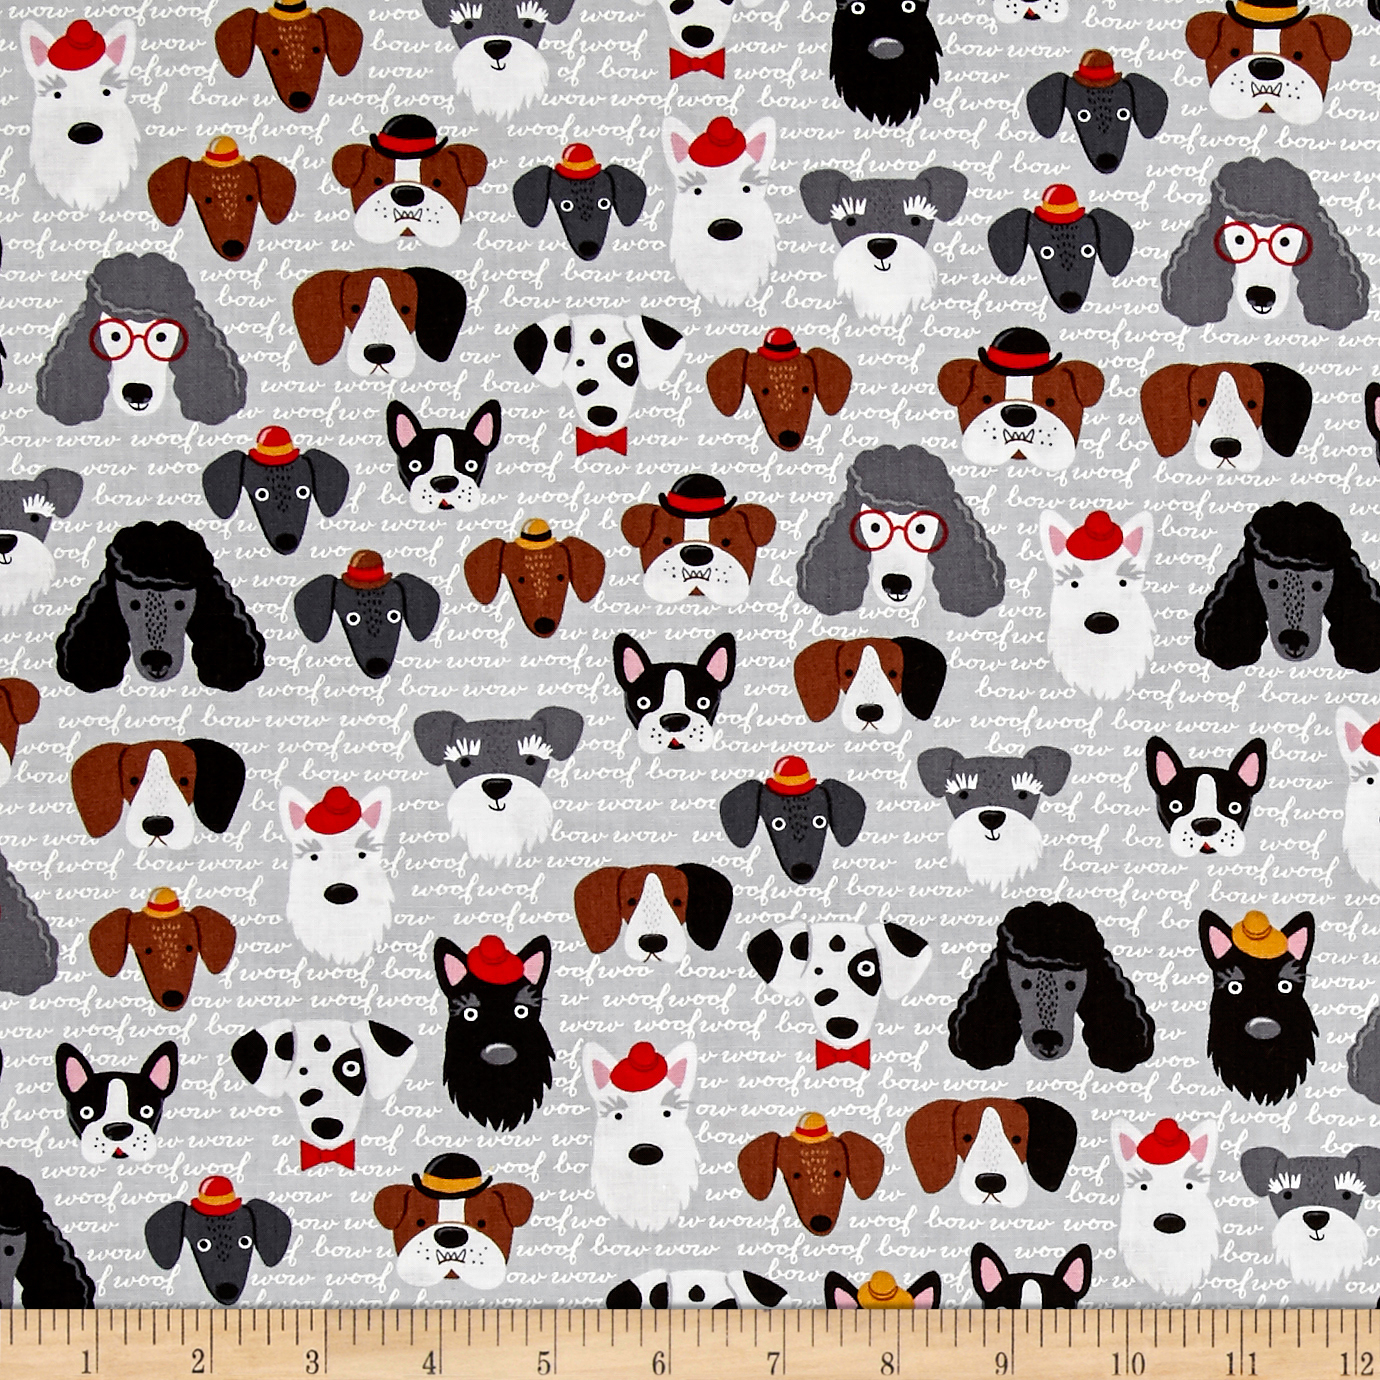 Kaufman Classy Canines Dog Faces Vintage Fabric